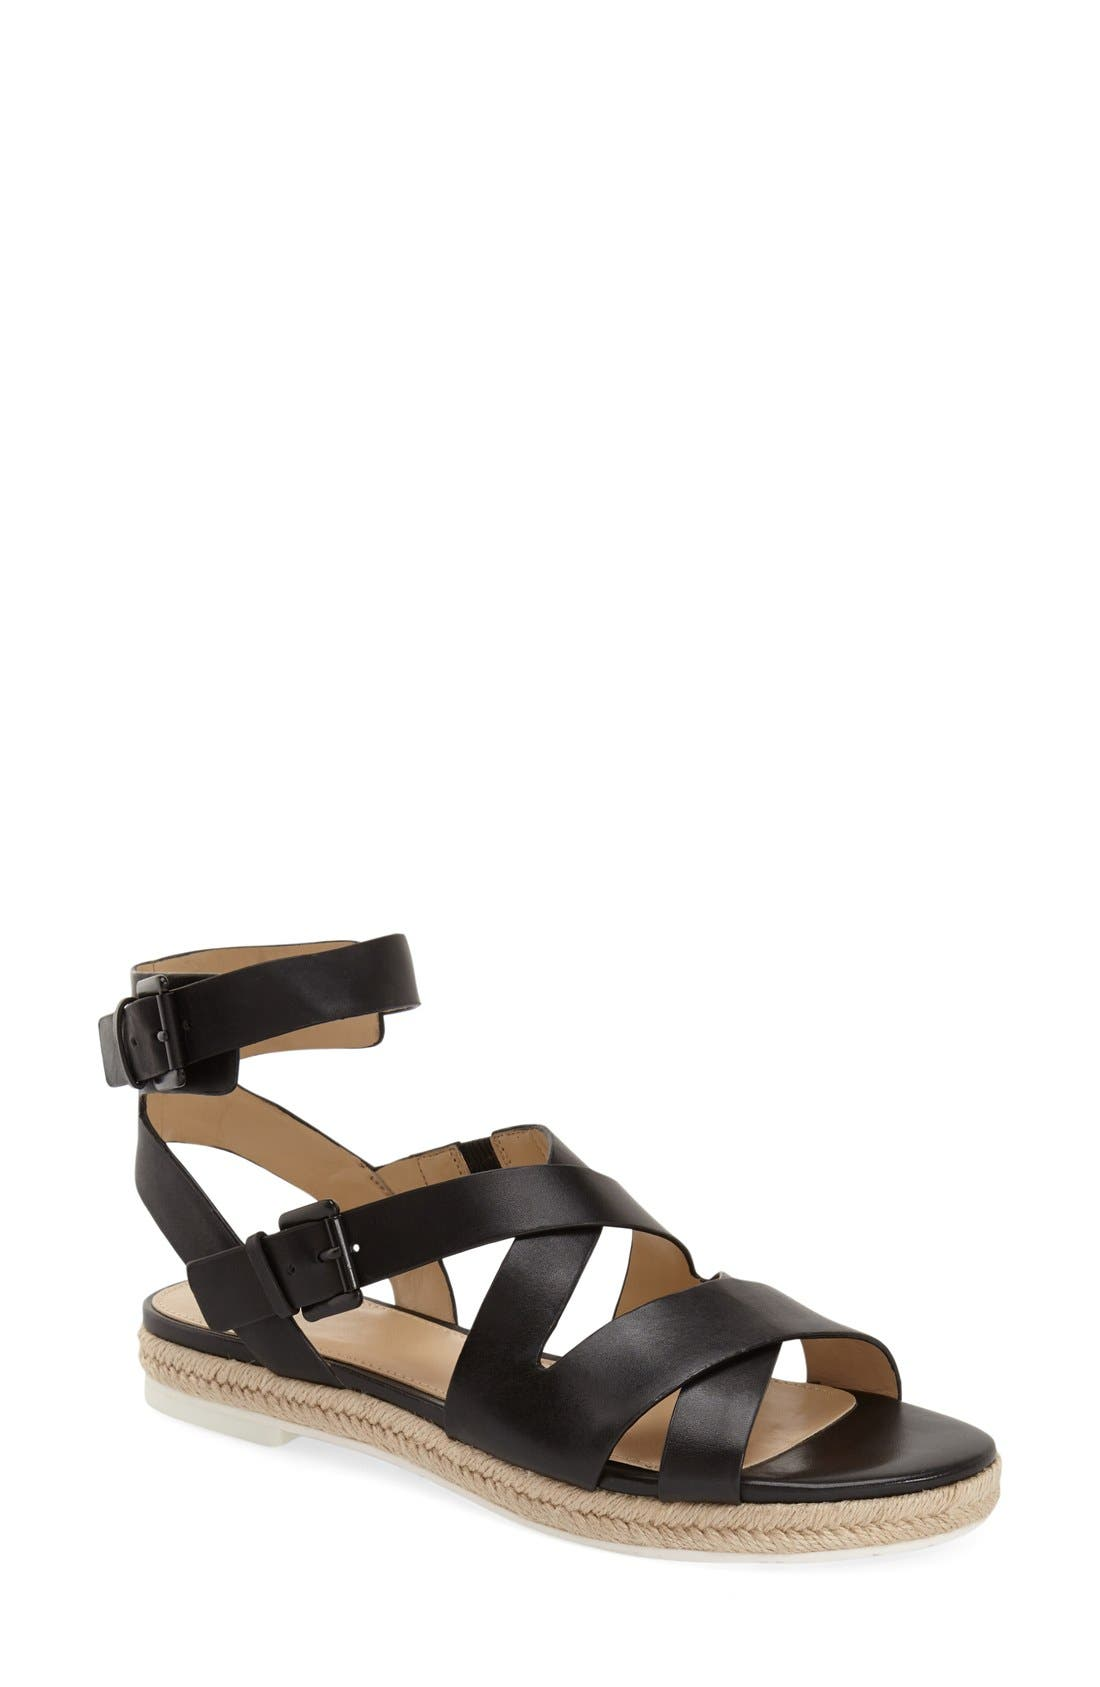 MARC FISHER LTD 'Alysse' Flat Sandal, Main, color, 001